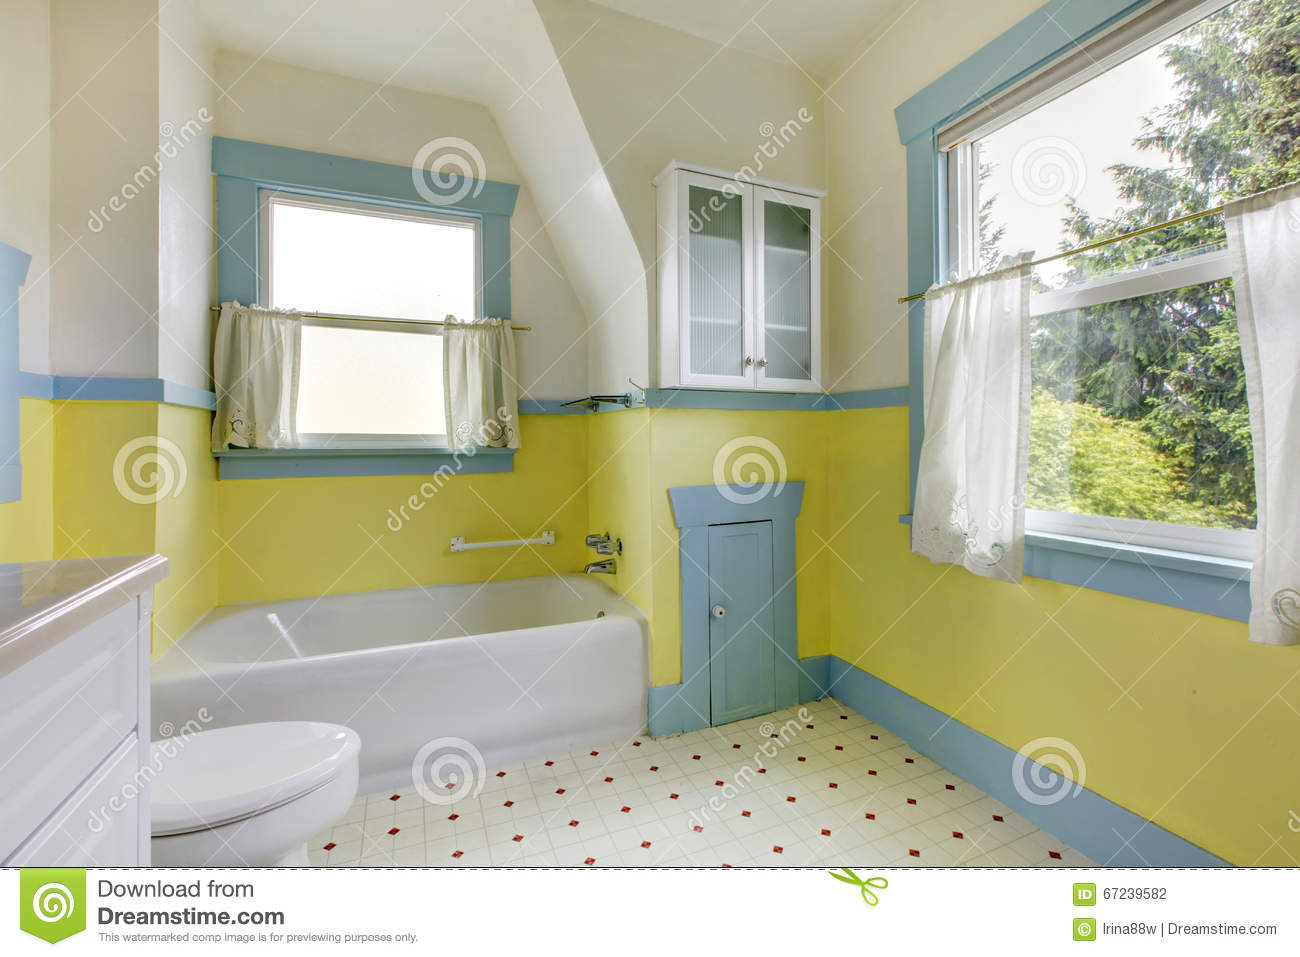 Bathroom With Yellow Walls White Tile Floor And Full Bath